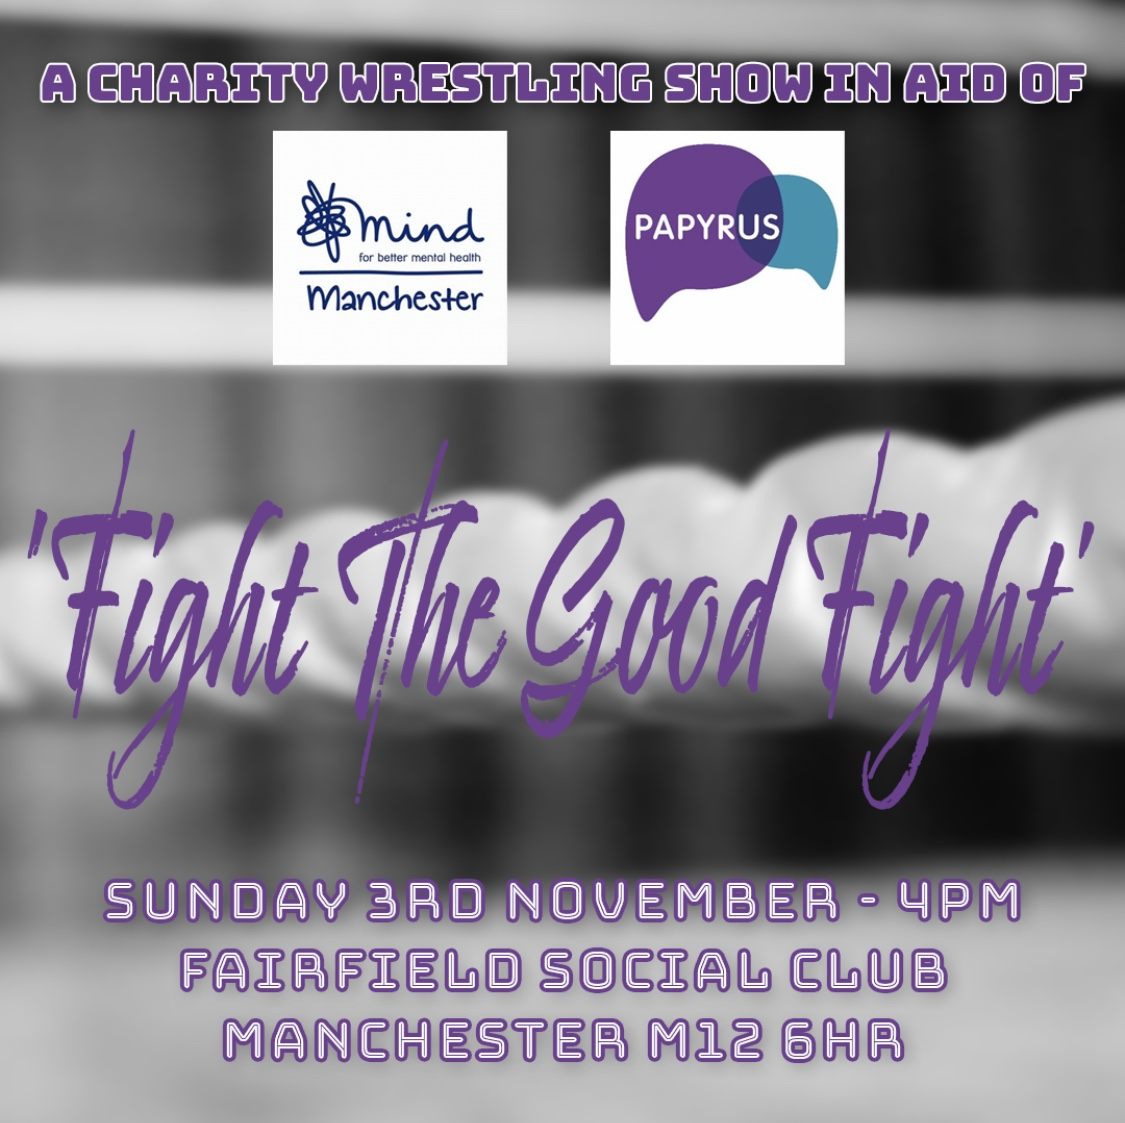 Fight The Good Fight - Charity Wrestling Show event description image